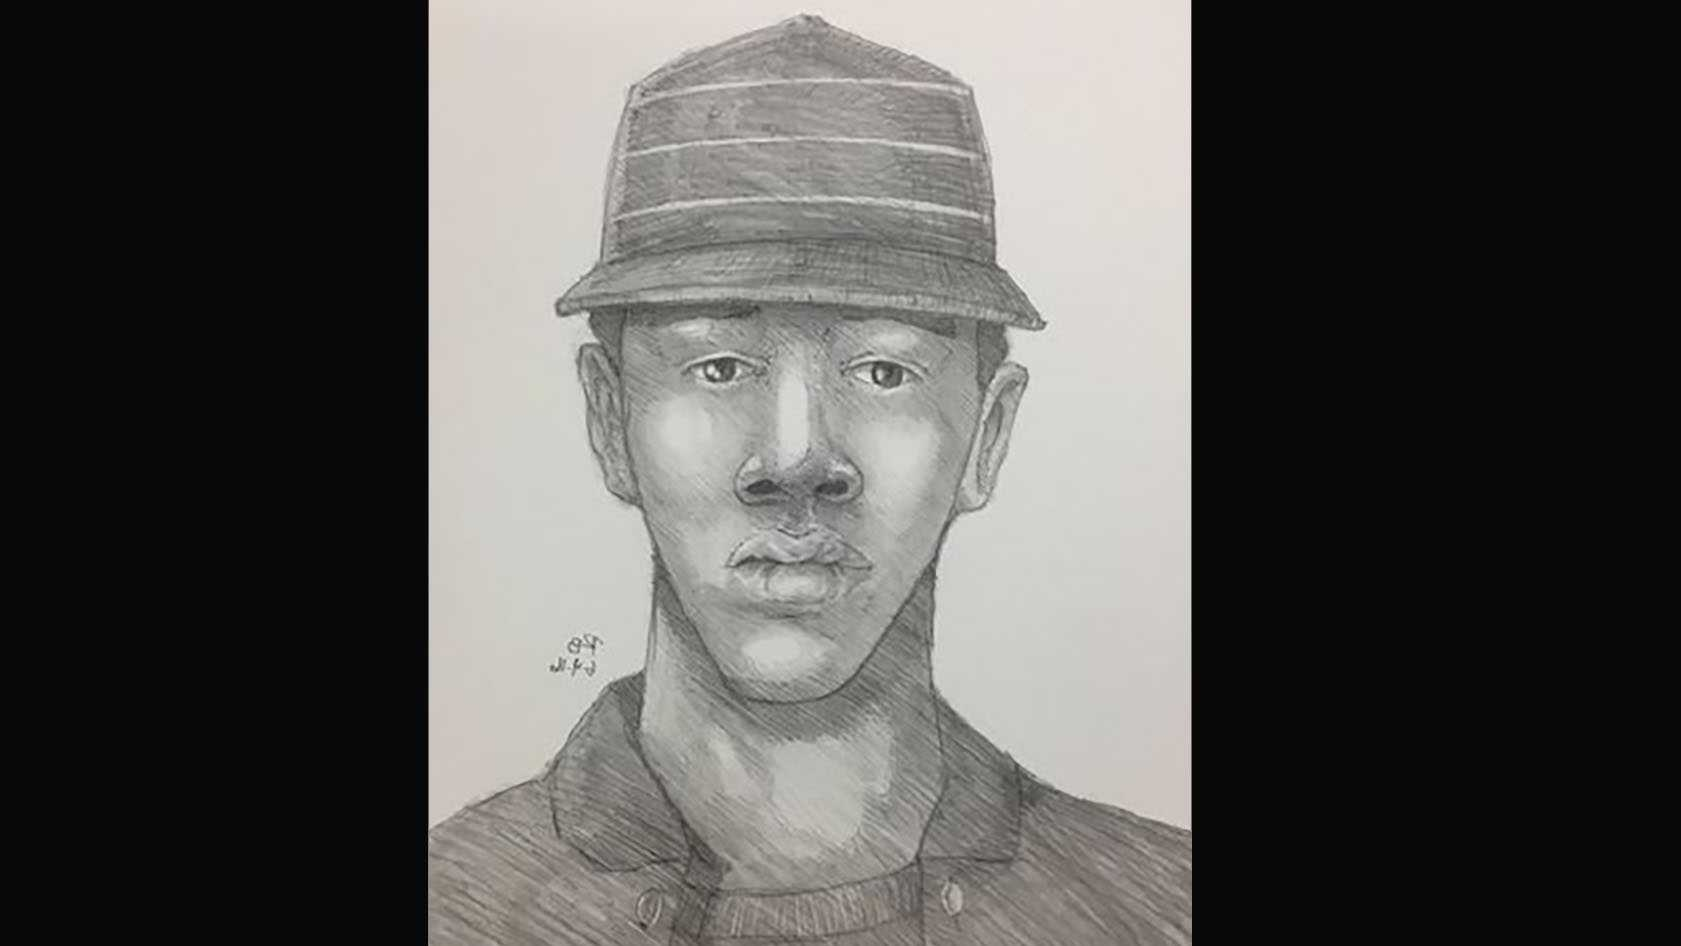 Sketch of man accused of sexually assaulting and robbing a woman in a Sacramento apartment complex Saturday.